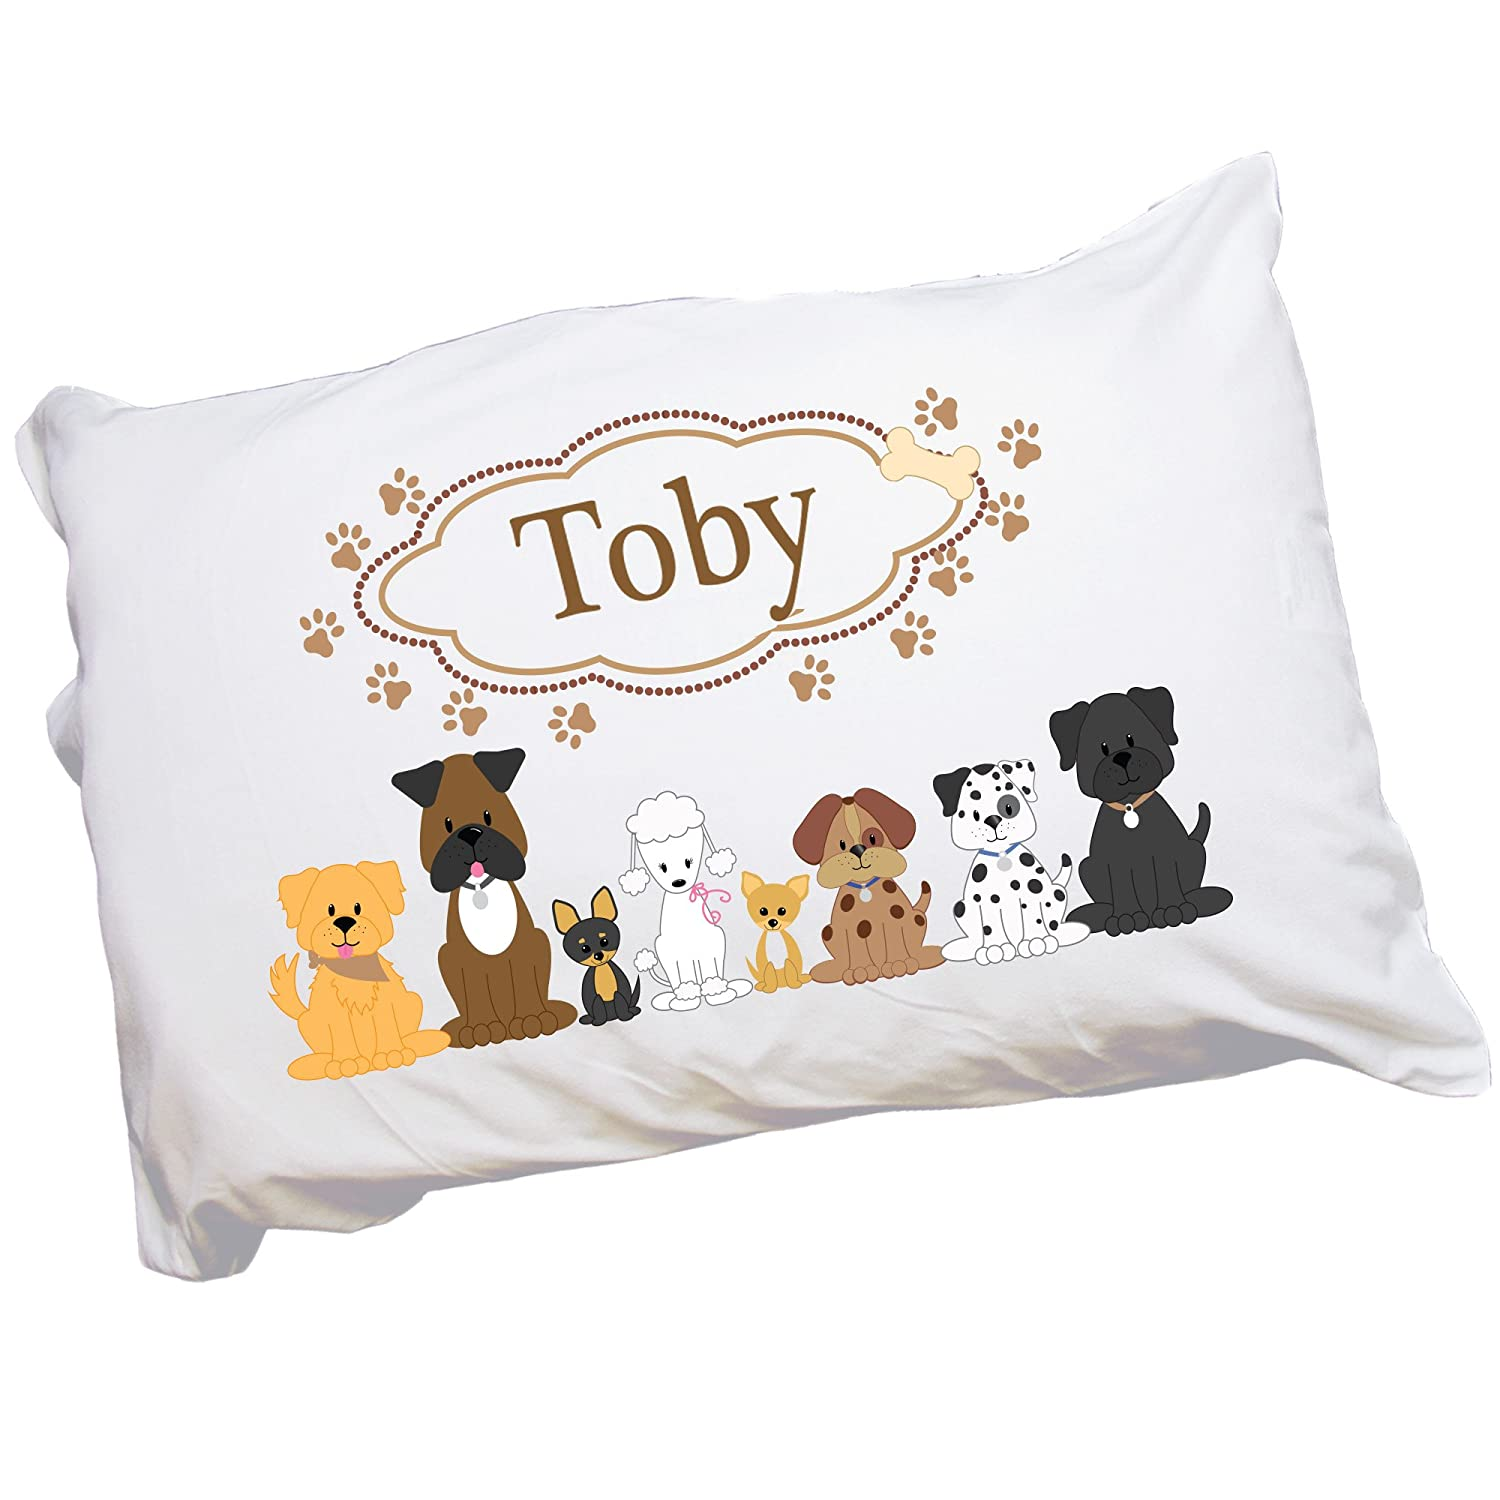 MyBambino Personalized Puppy Dog Pillowcase